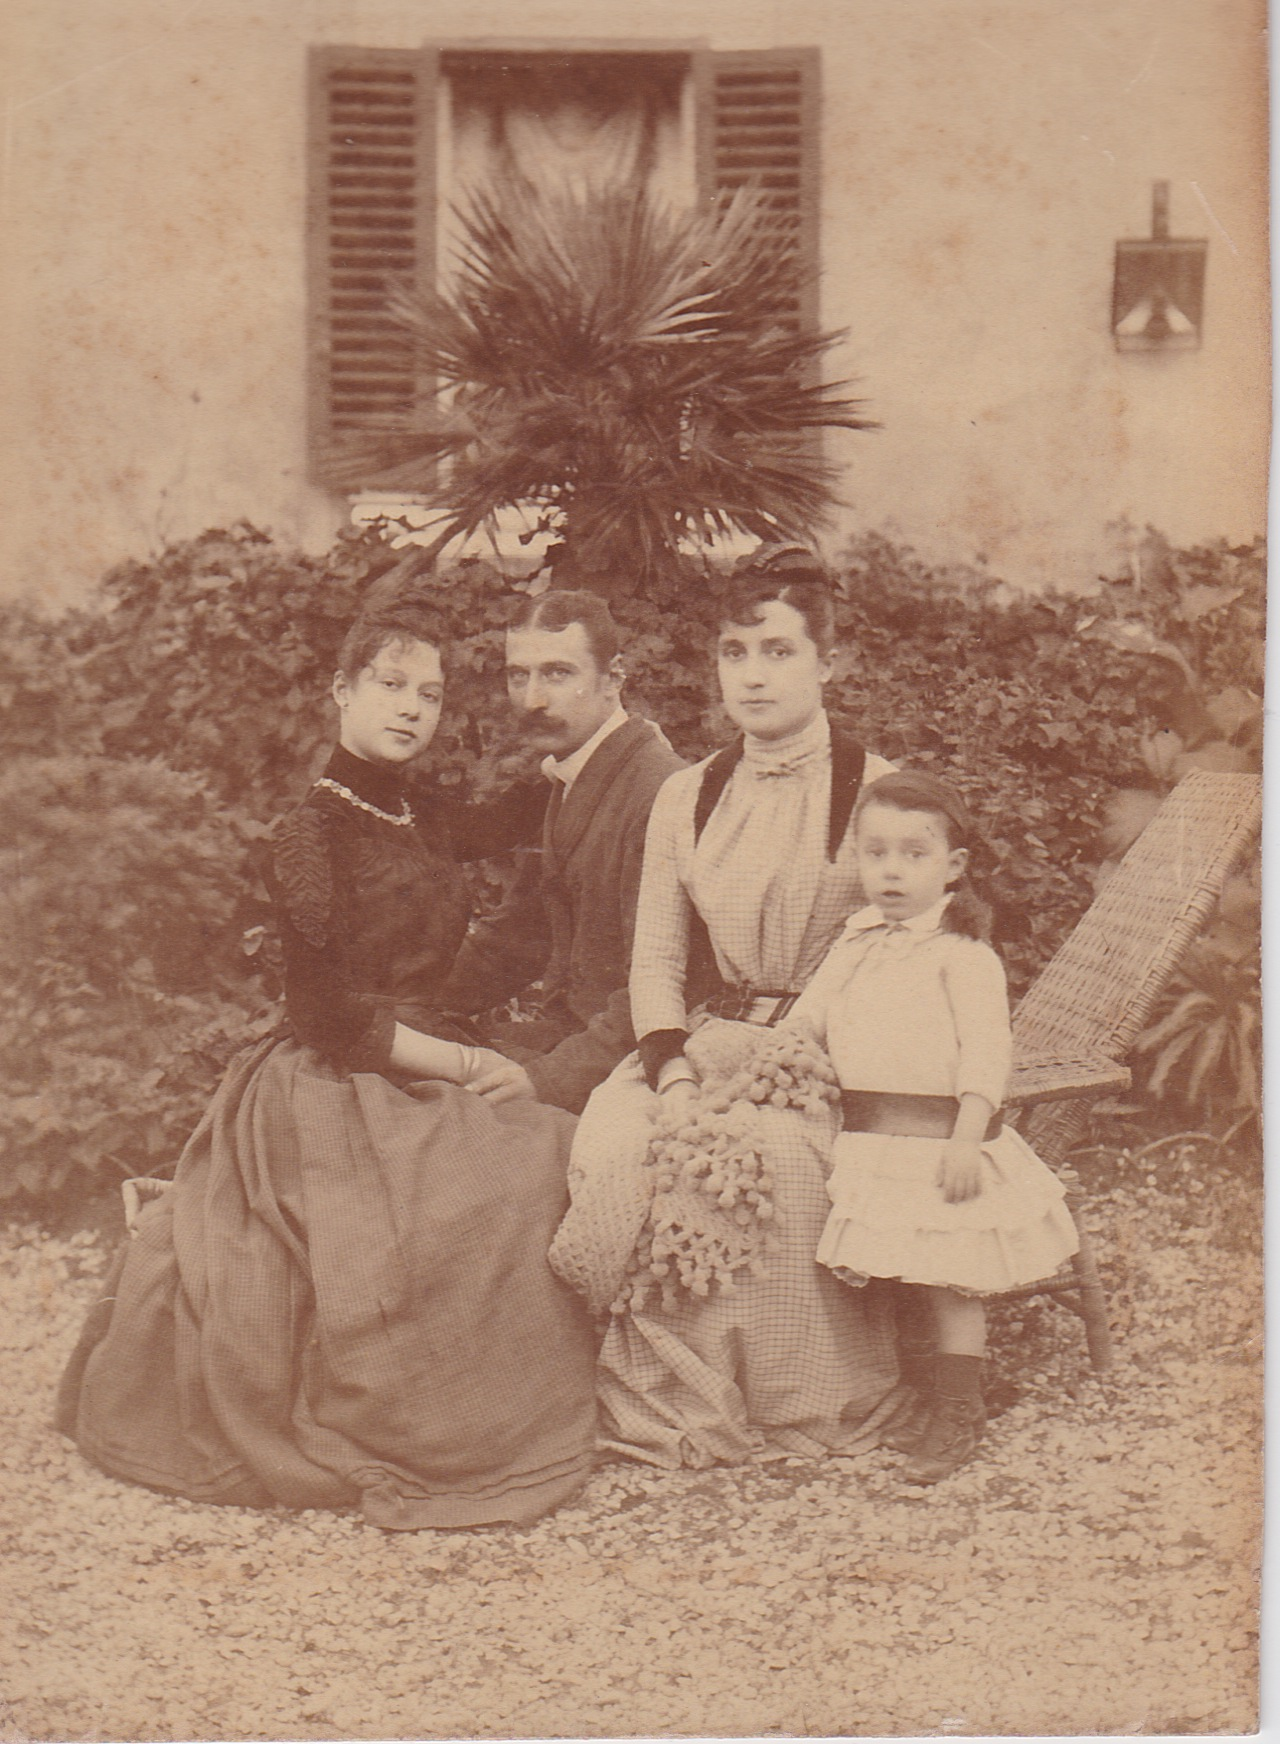 My great-grandfather Raoul with his sister Marie and parents Ernesto and Adele.